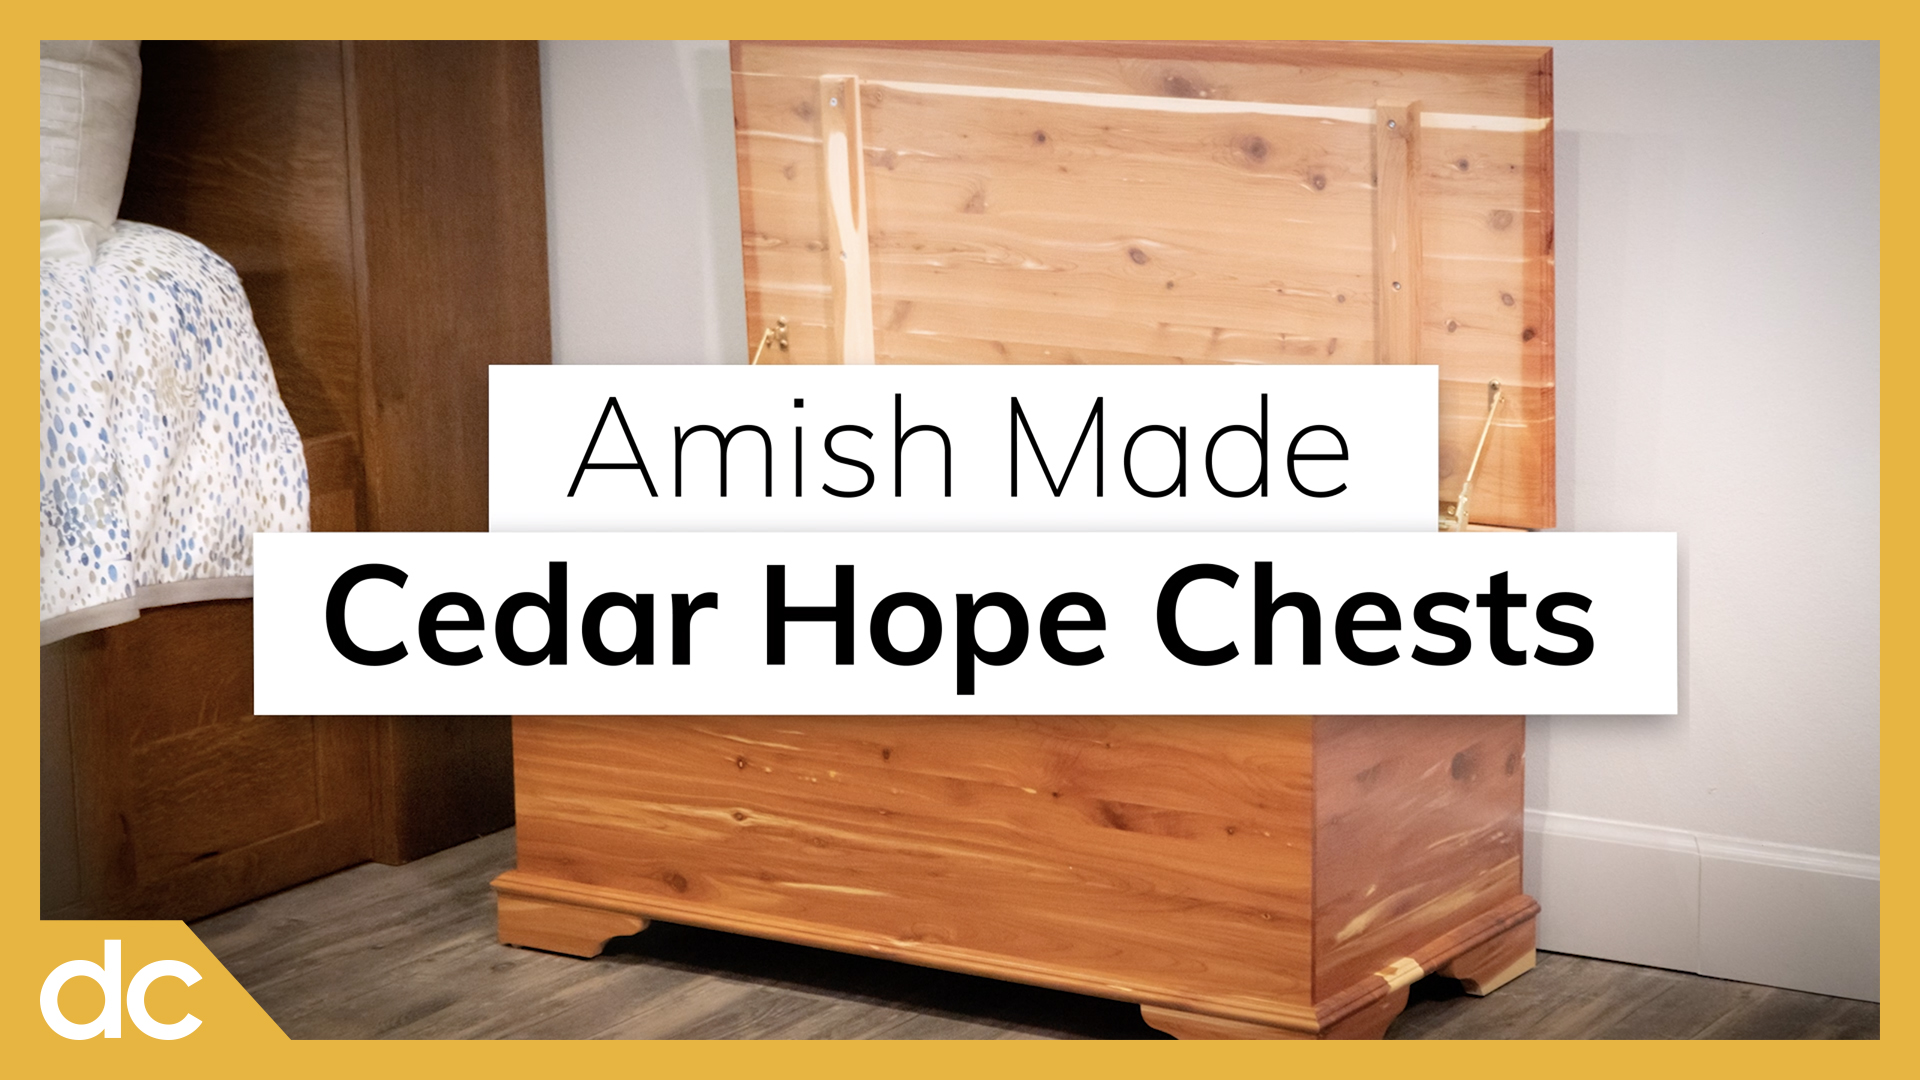 Amish Made Cedar Hope Chests Video Title